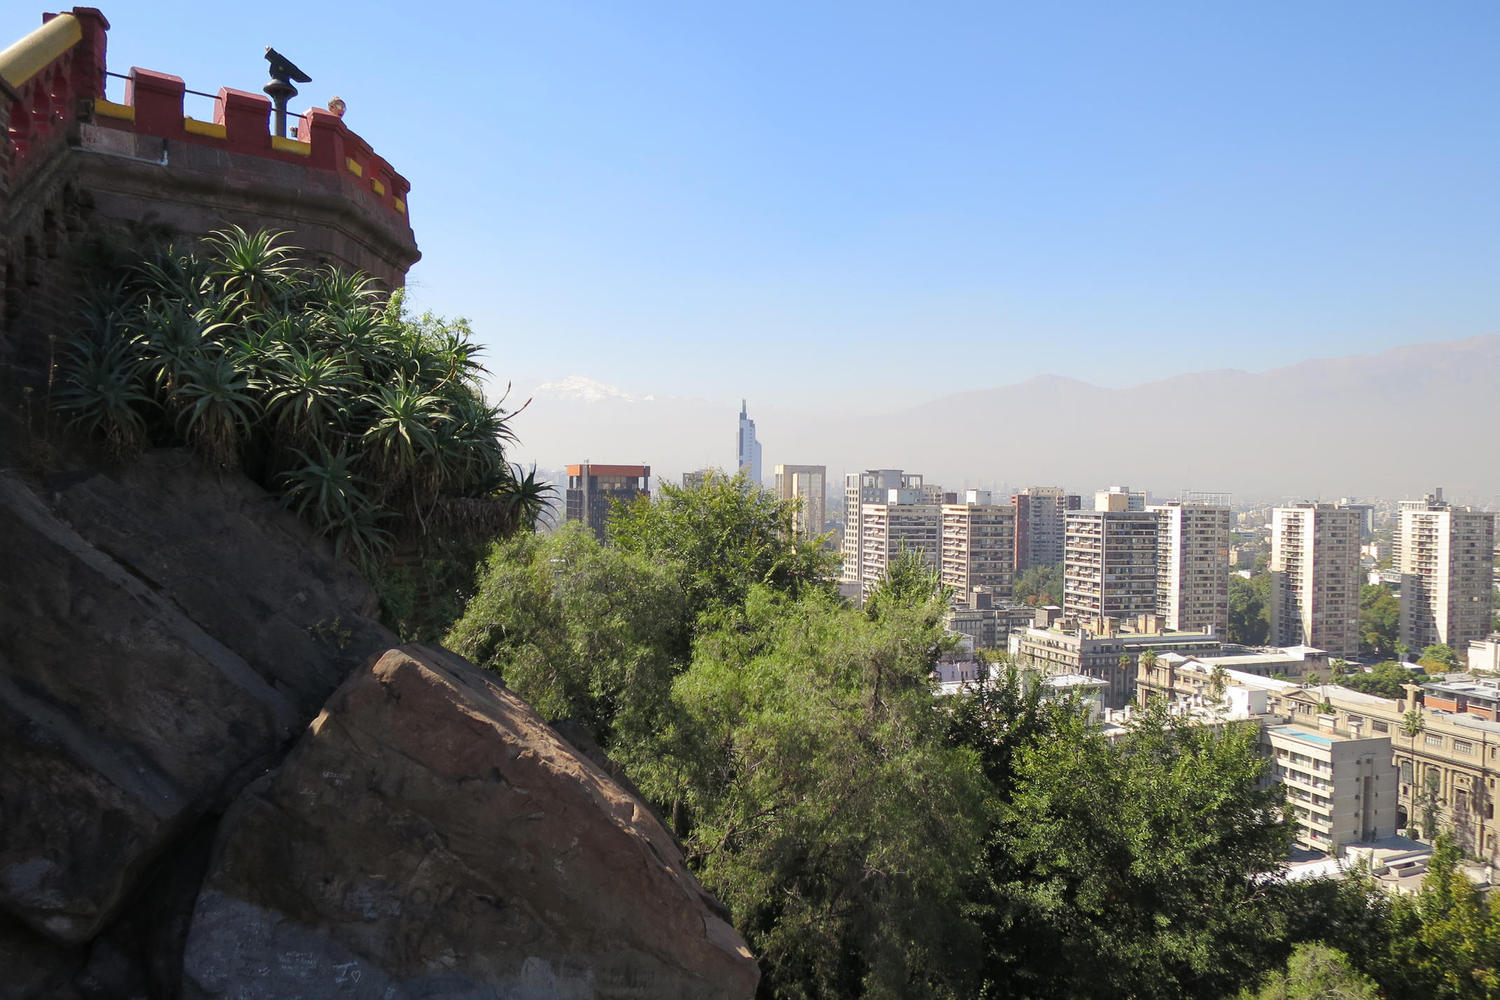 Looking out from Cerro Santa Lucia in Chile's capital, Santiago